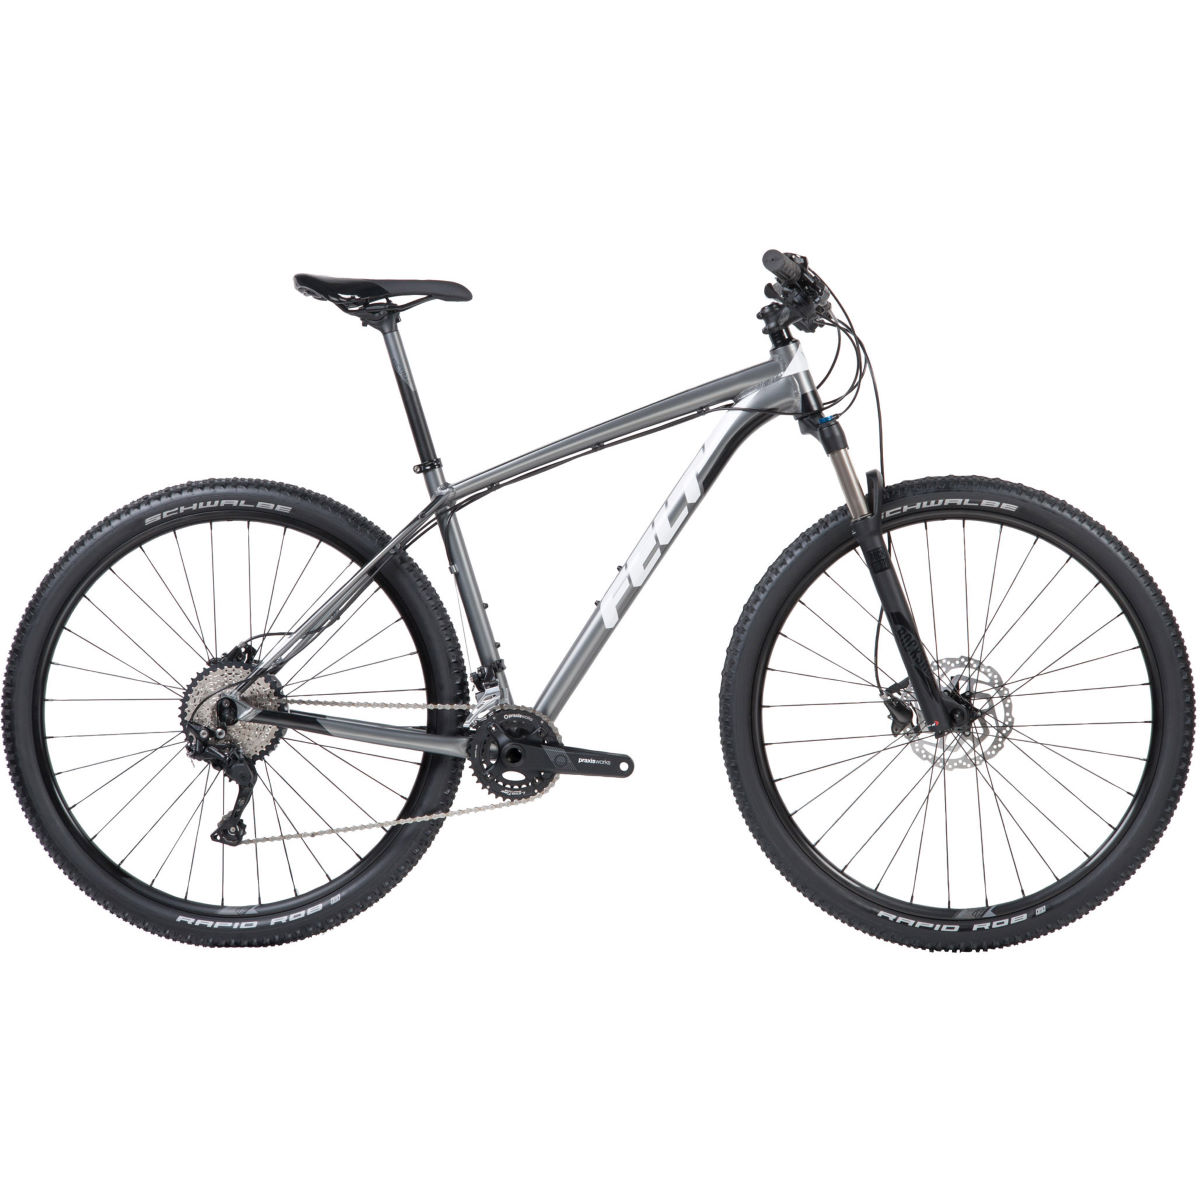 VTT semi-rigide Felt Dispatch 9/50 XC (2018) - 22'' Stock Bike